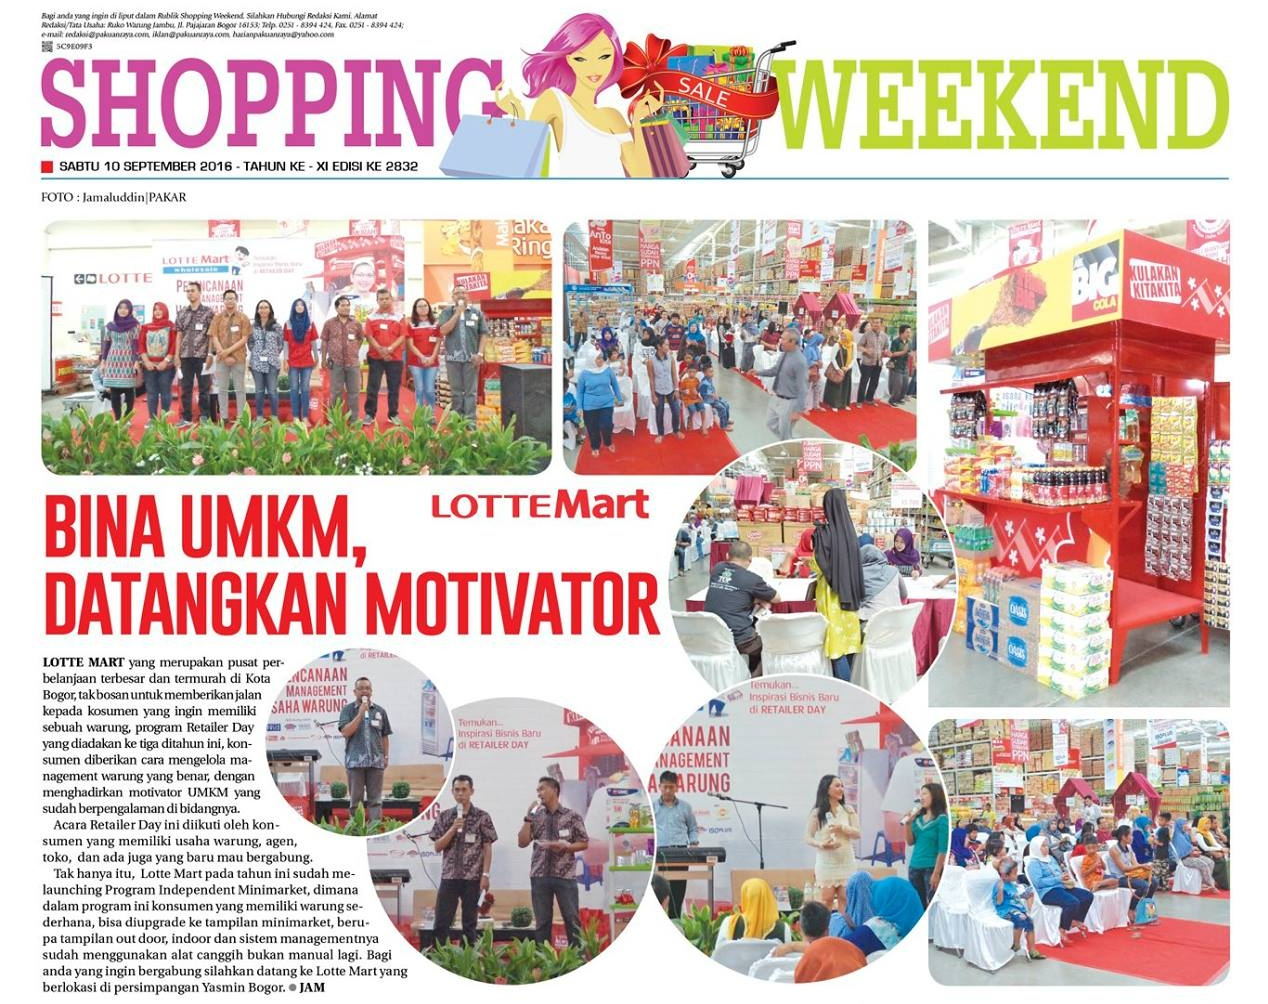 Terima Kasih LOTTEMart & SHOPPING WEEKEND